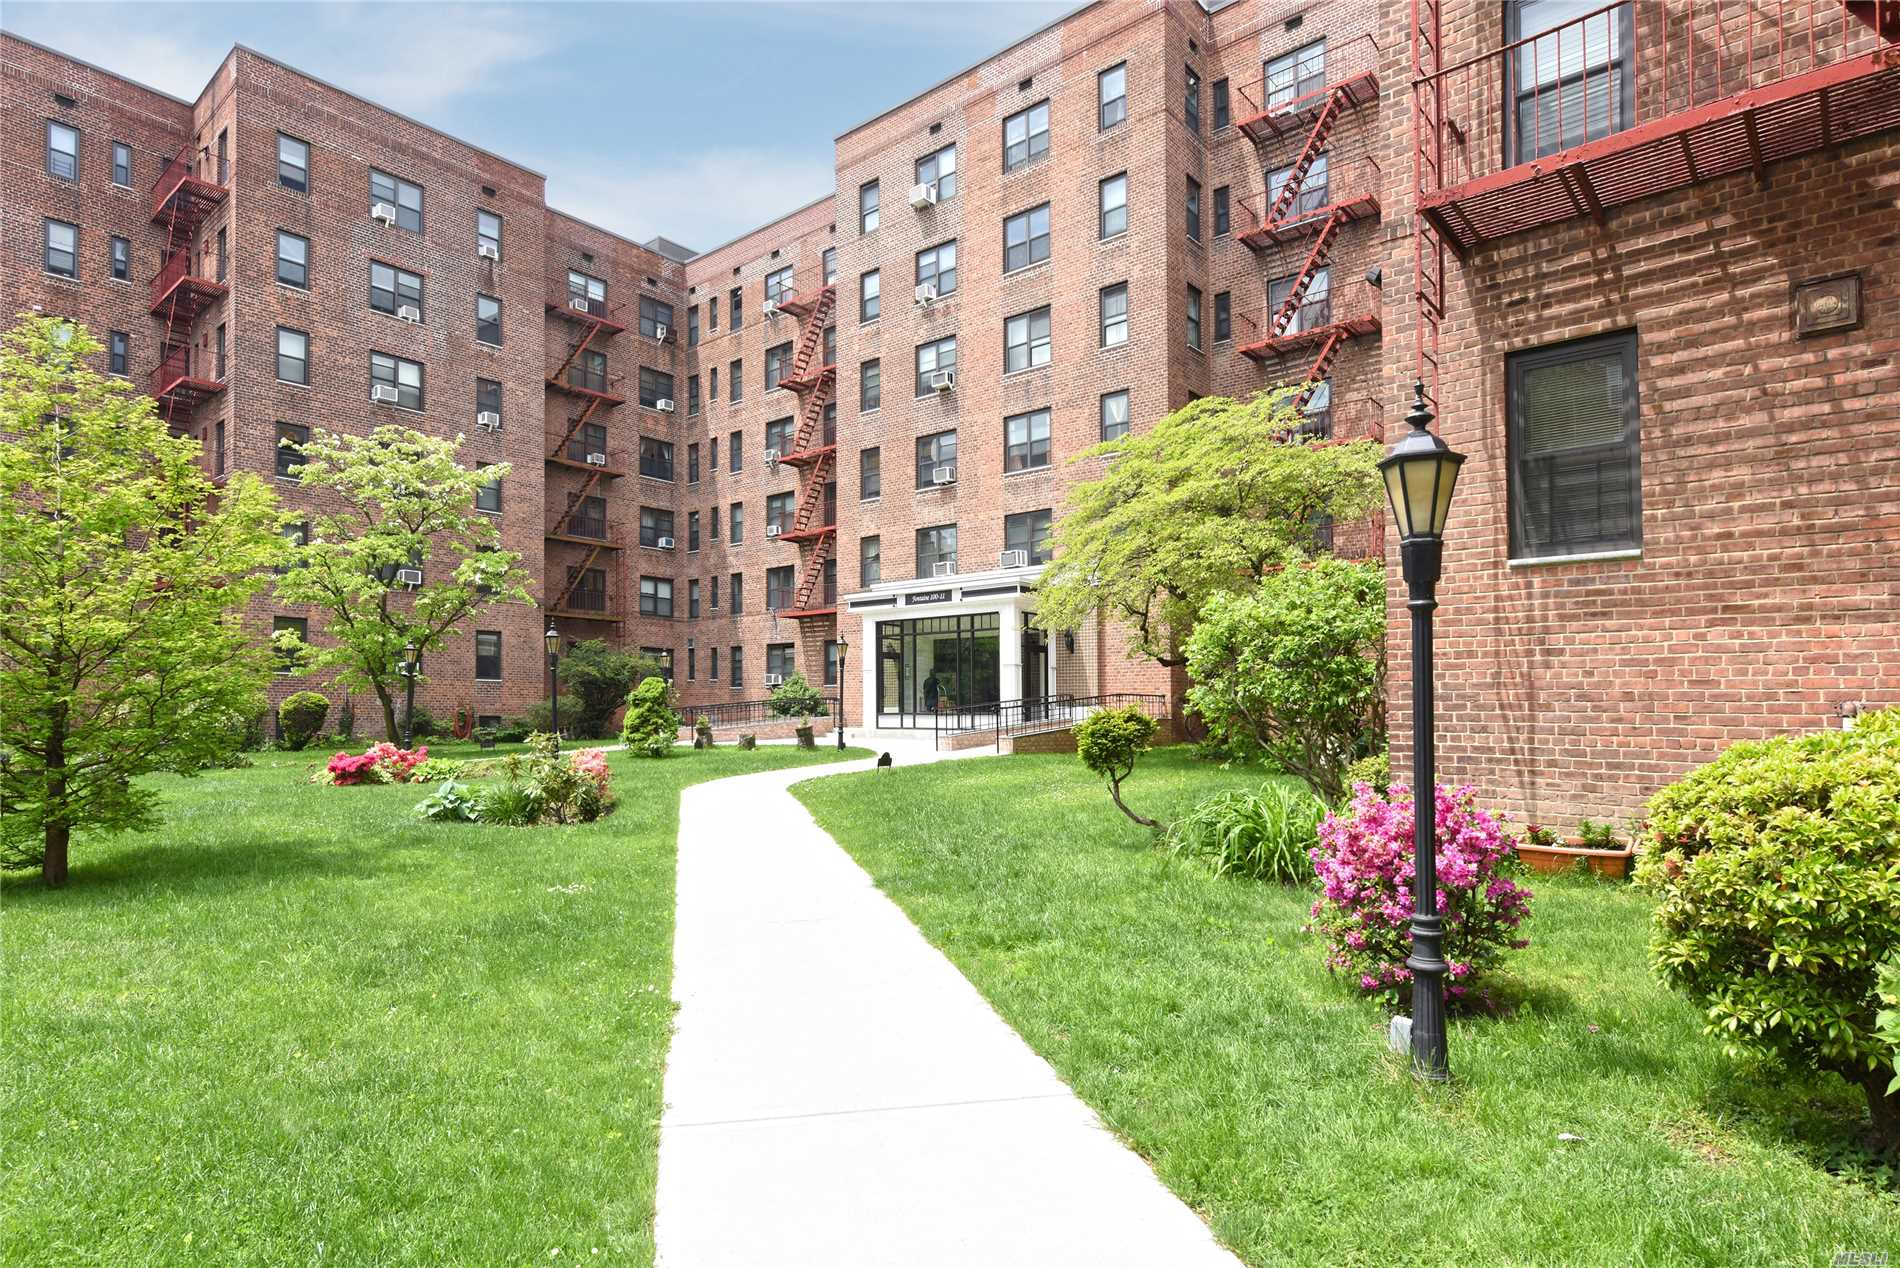 100-11 67 Rd - Forest Hills, New York